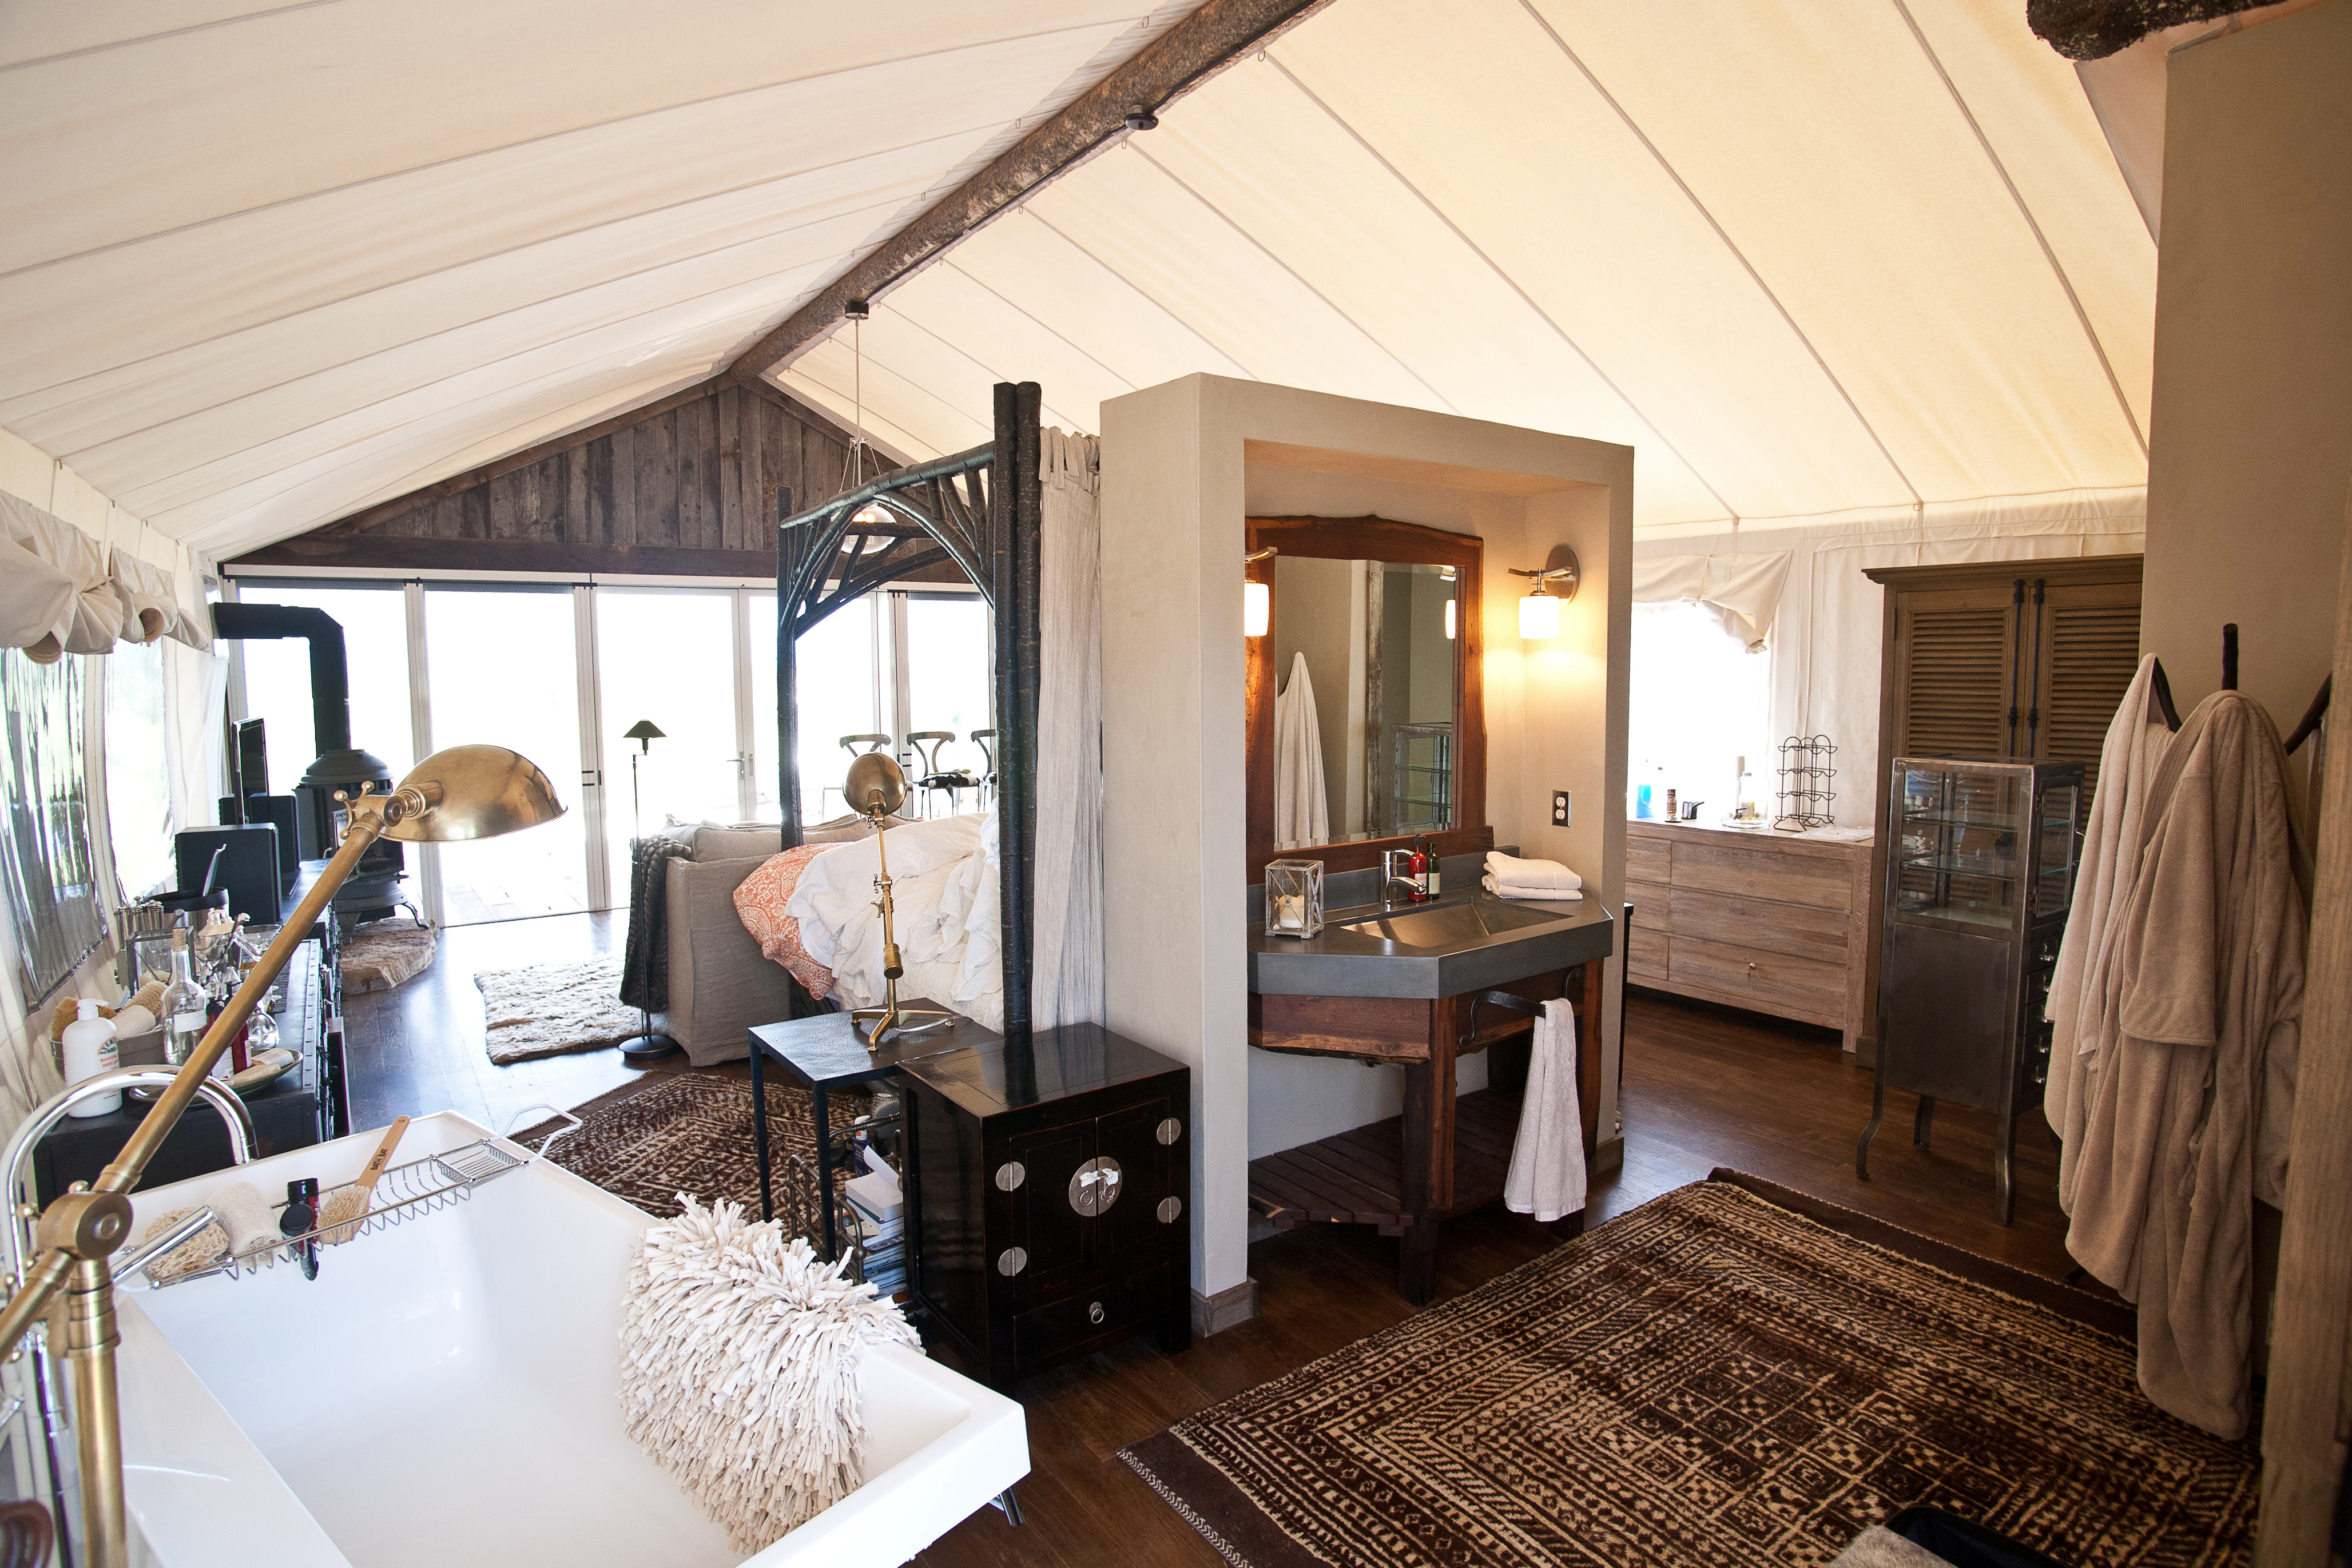 Tent House interior